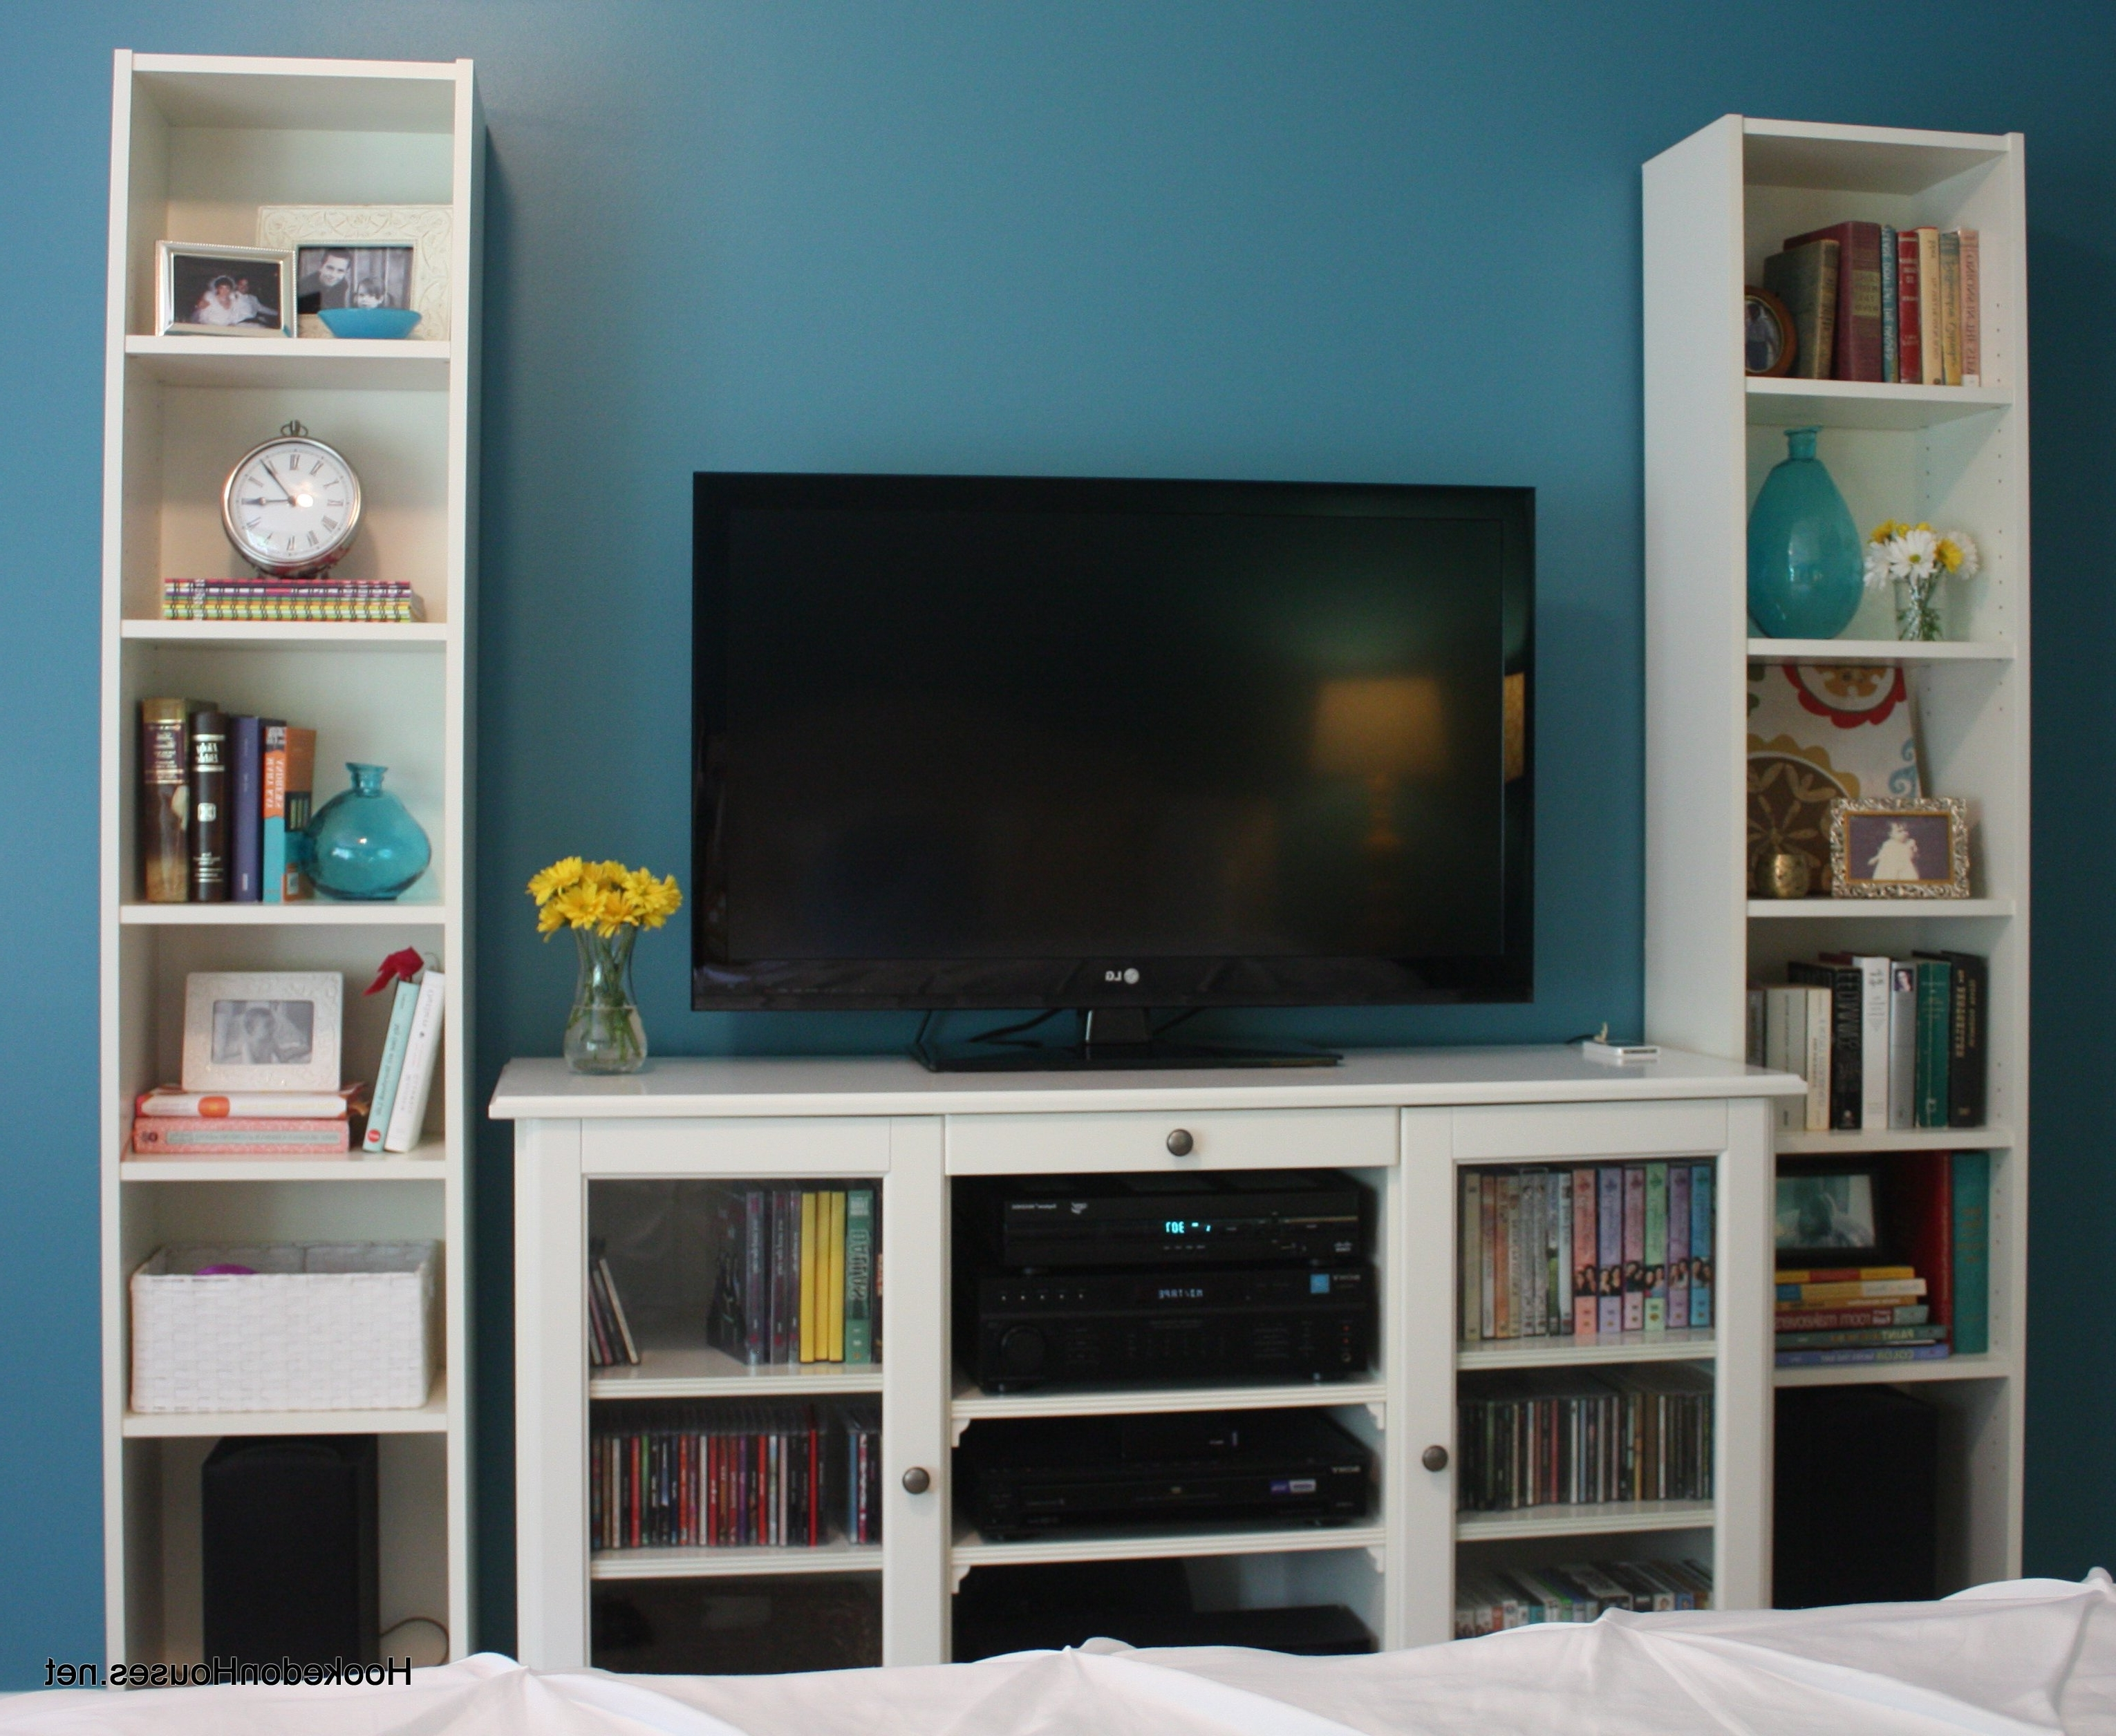 Current Bookcases With Tv Space Intended For Bookshelves With Tv Space How To Build Around Fireplace Turn (View 7 of 15)